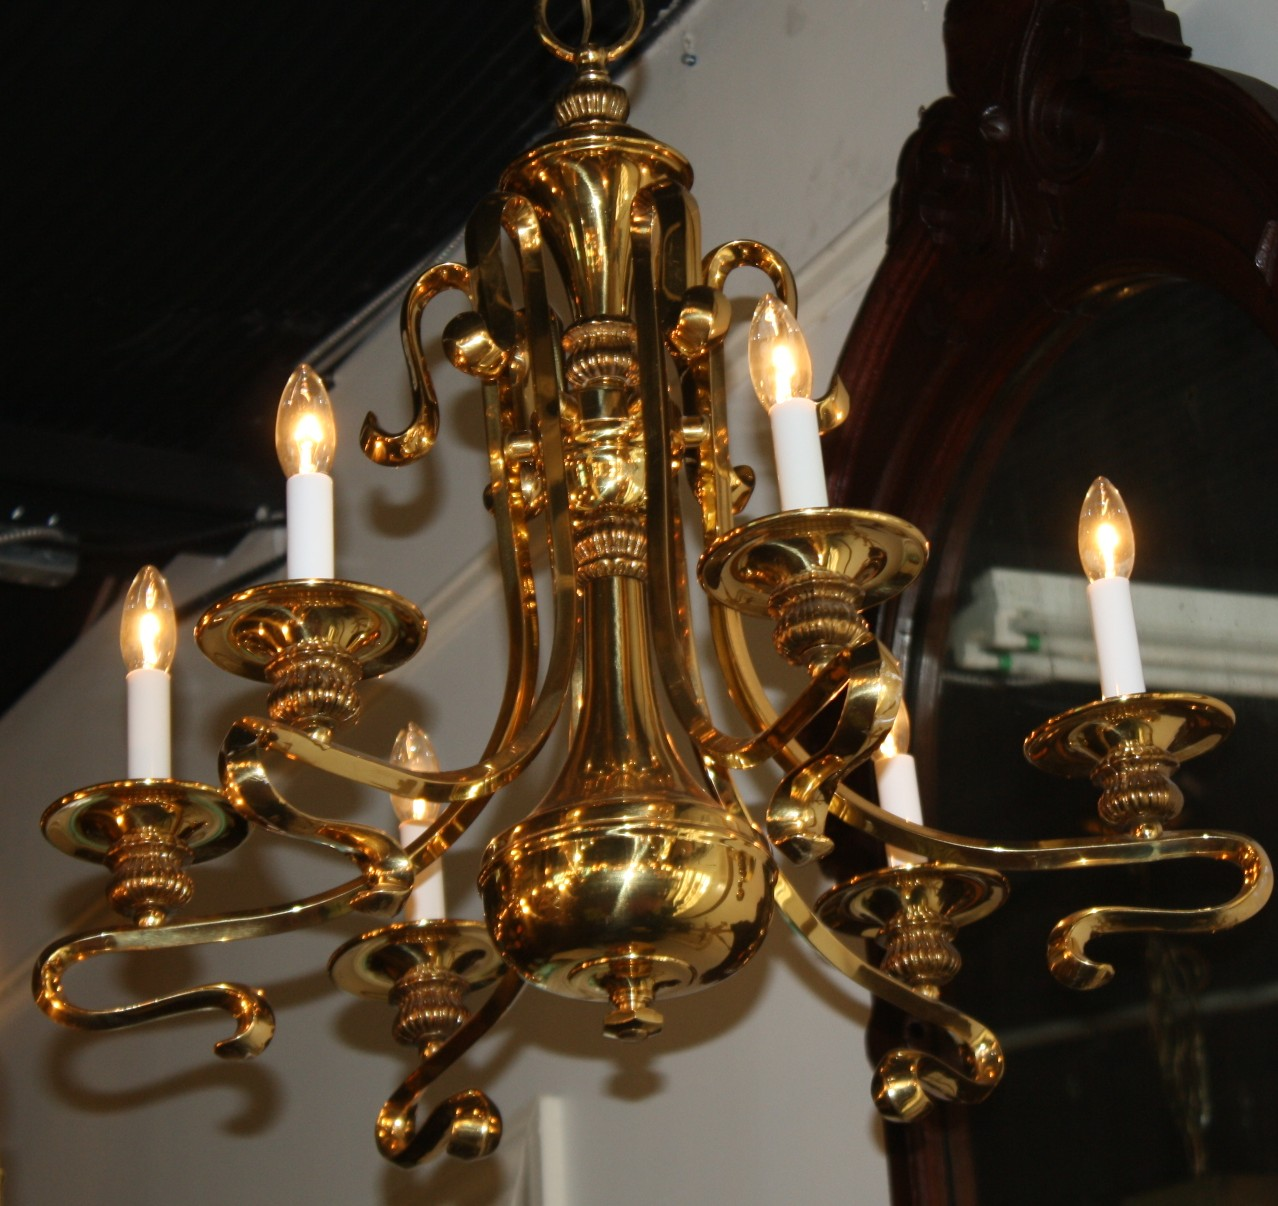 Swirl arm six light brass chandelier for sale antiques an actually good looking brass chandelier six arms curl and swirl to hold tall candles on broad bobeches correctly proportioned center urn is both aloadofball Image collections